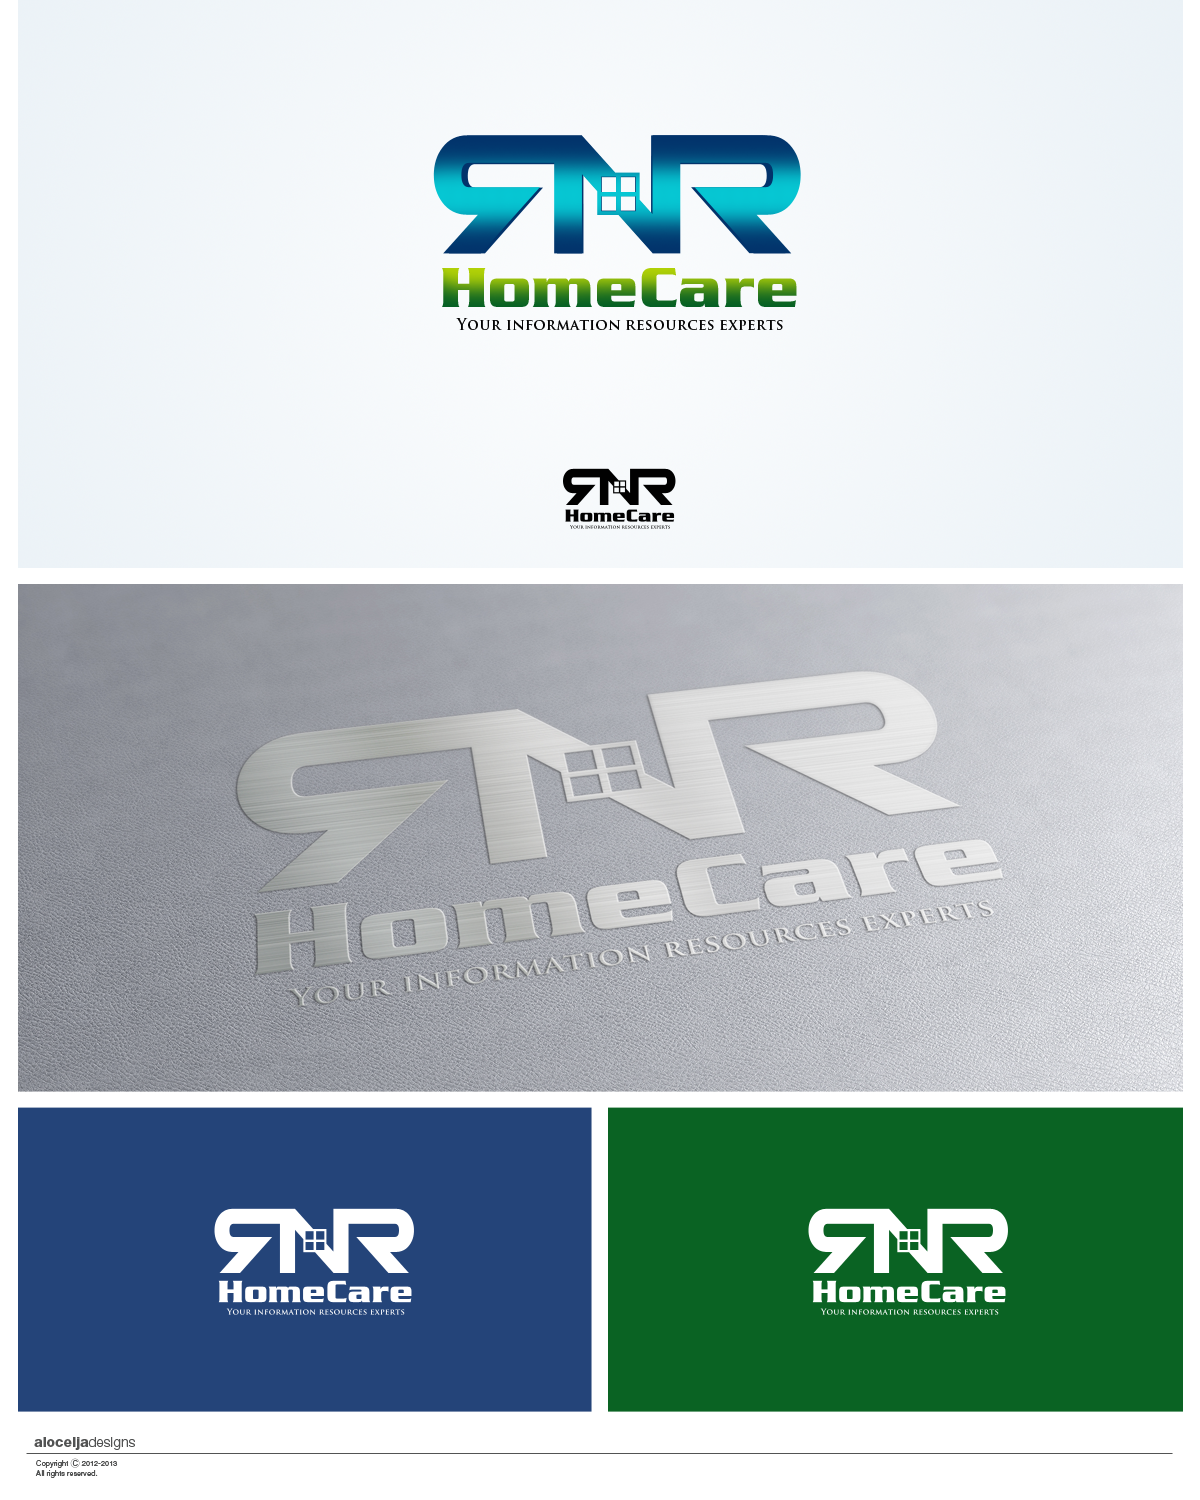 Logo Design by alocelja - Entry No. 18 in the Logo Design Contest Imaginative Logo Design for RNR HomeCare.